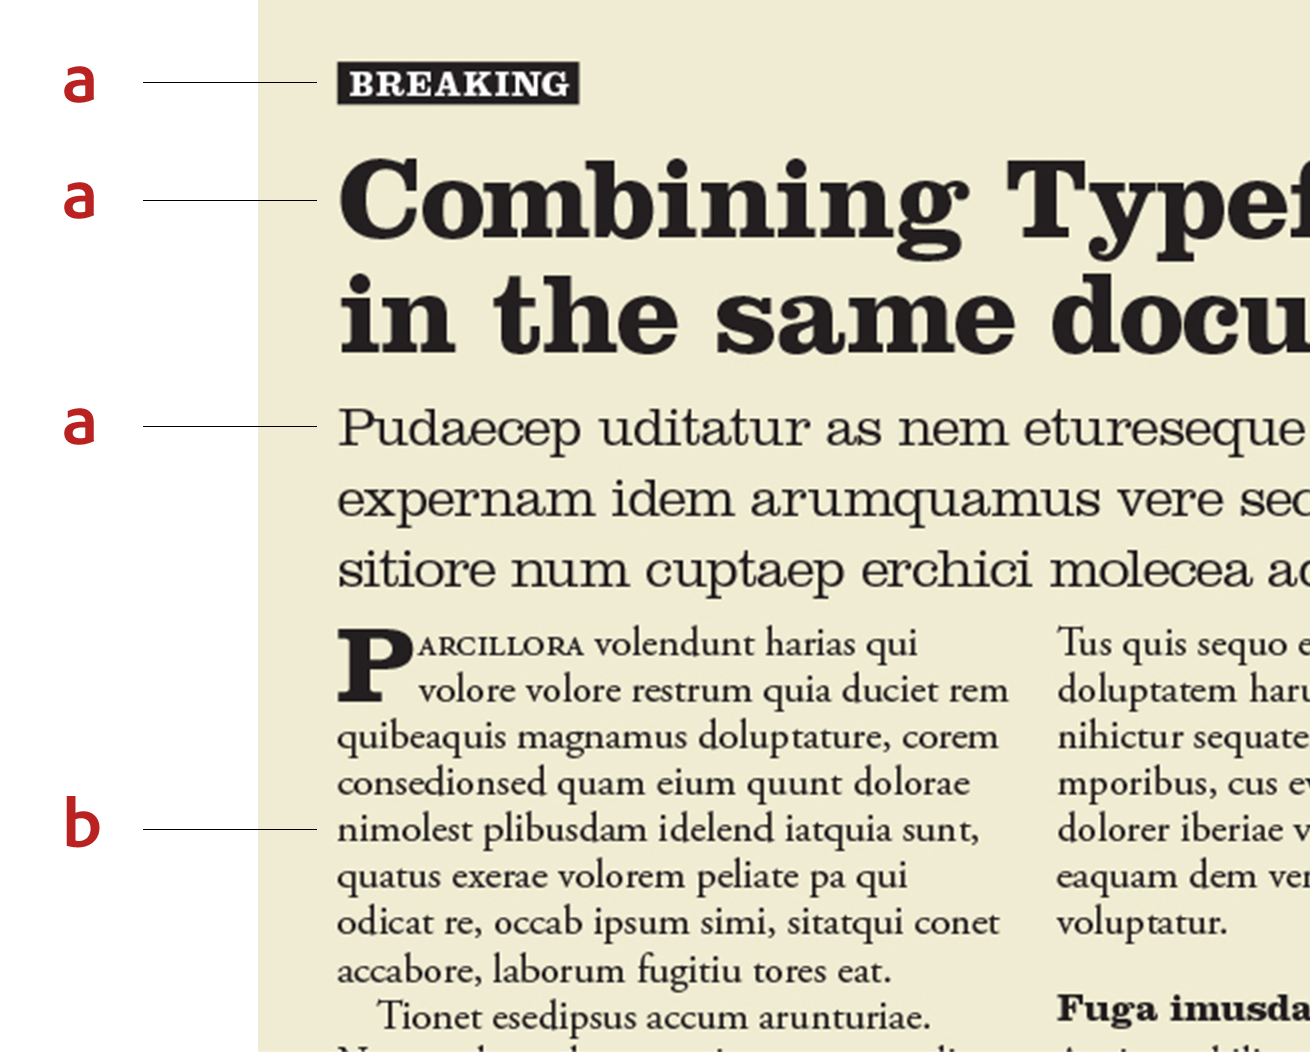 An example of the typefaces Clarendon and Adobe Garamond used in the same layout.